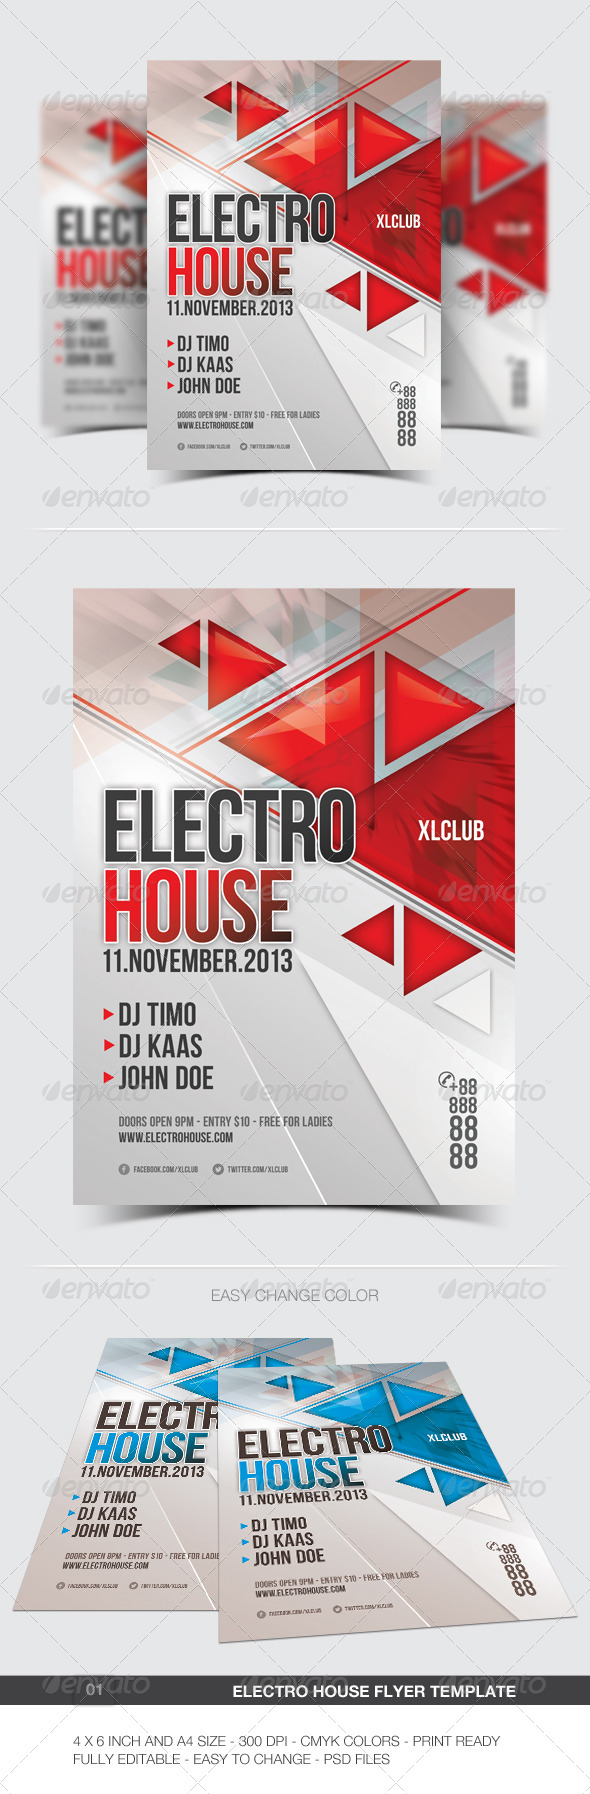 Electro Flyer/Poster - 01 - Clubs & Parties Events